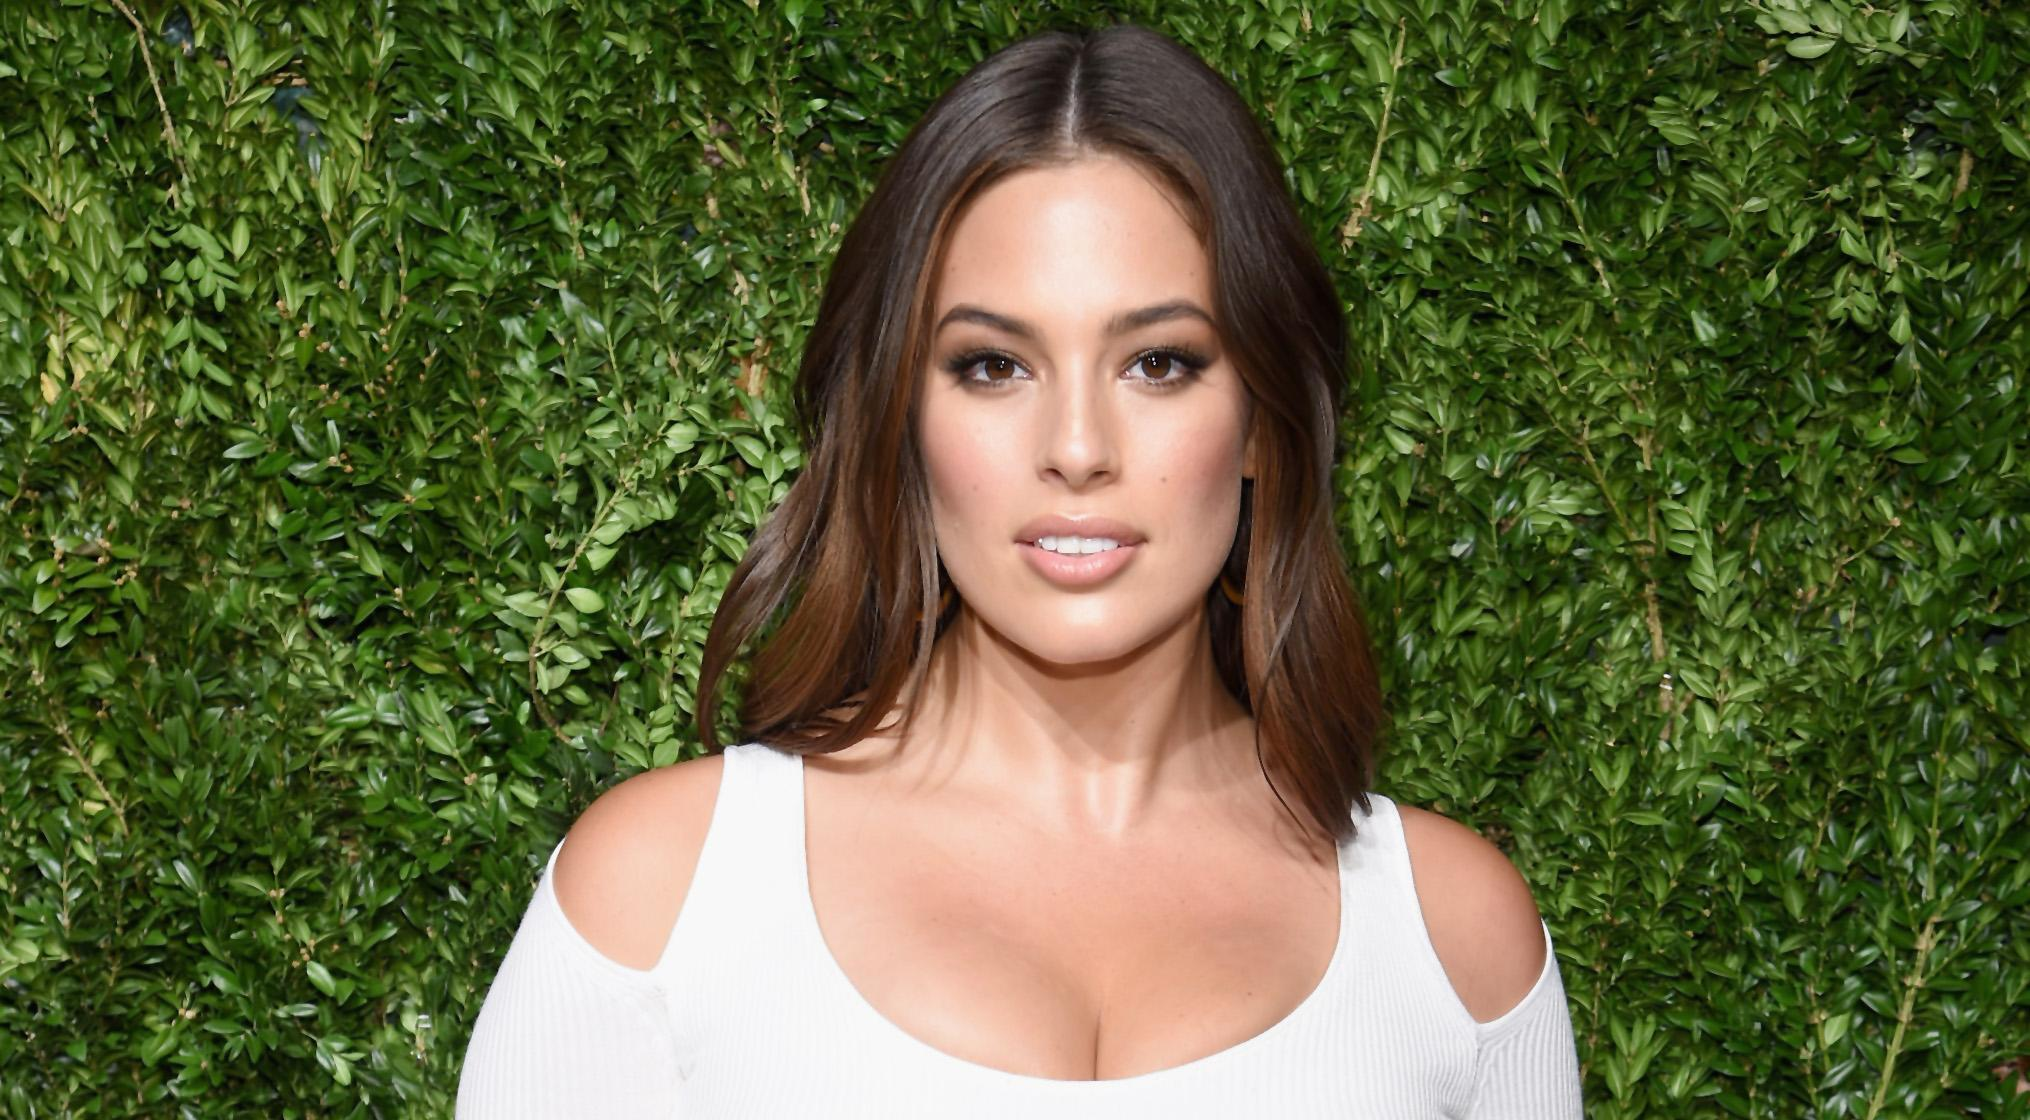 fl gel foto so pr sentiert sich ashley graham als victoria s secret engel. Black Bedroom Furniture Sets. Home Design Ideas